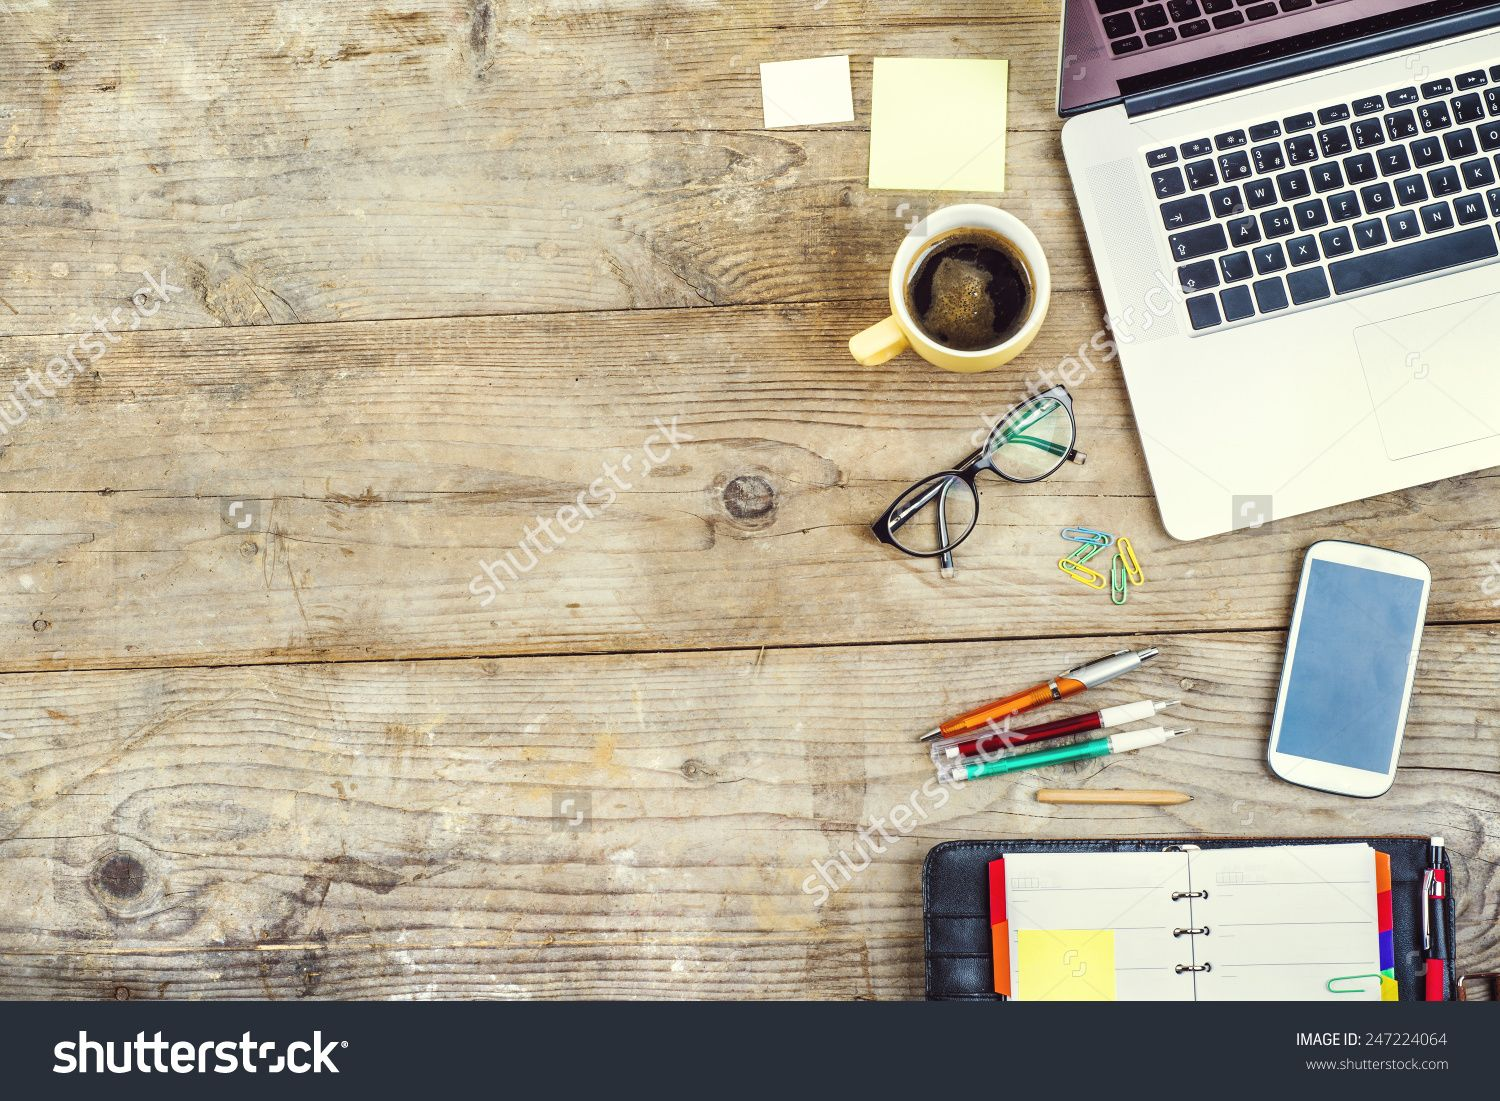 Desktop Mix On A Wooden Office Table Of Supplies And Gadgets Background View From Above